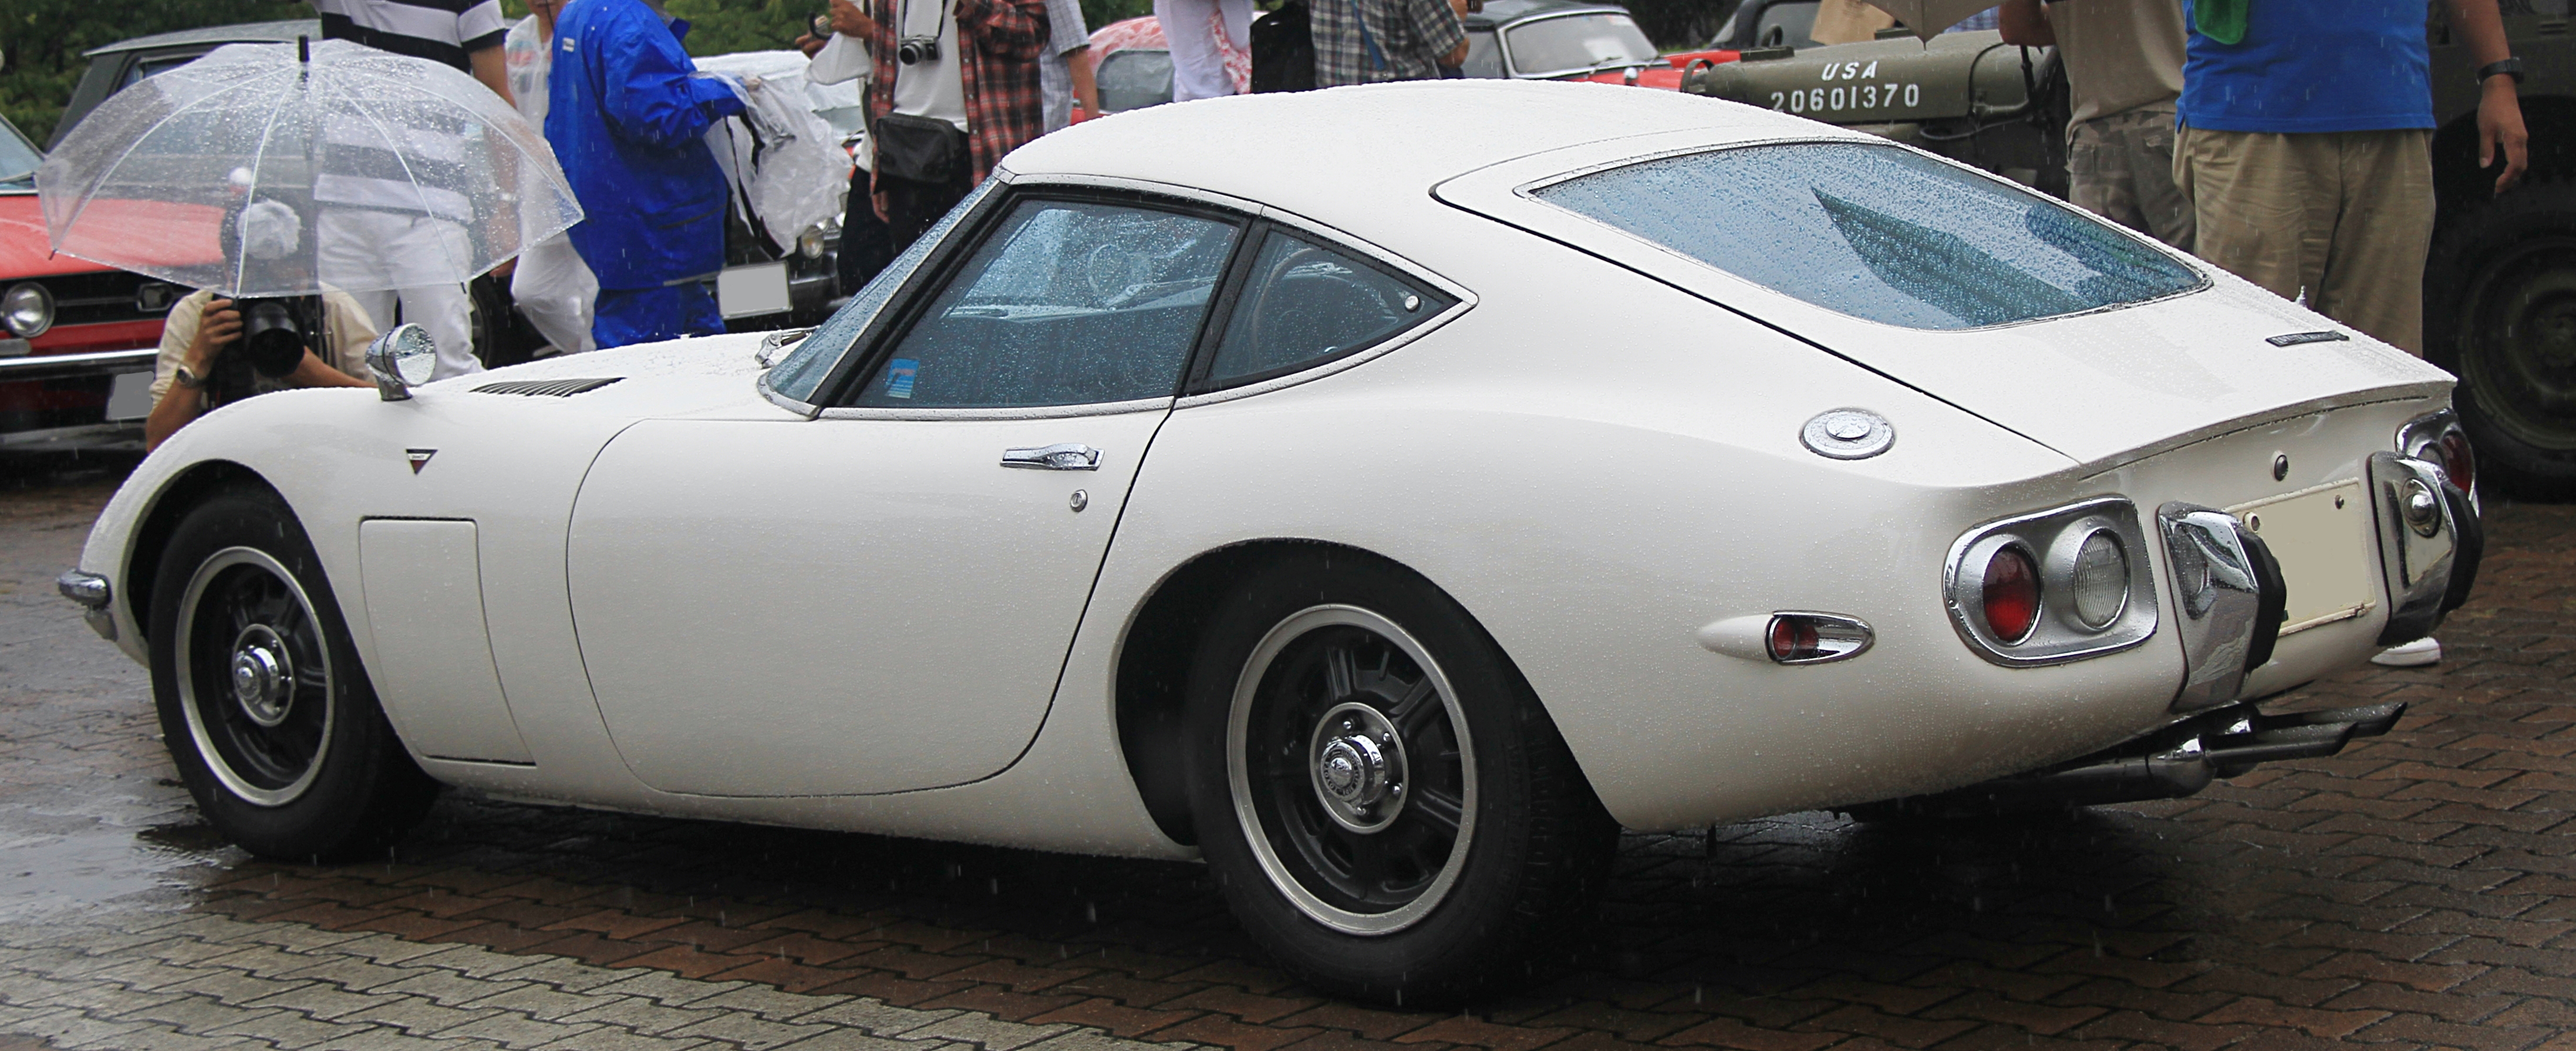 Build Your Own Toyota >> File:1967-1969 Toyota 2000GT rear.jpg - Wikimedia Commons